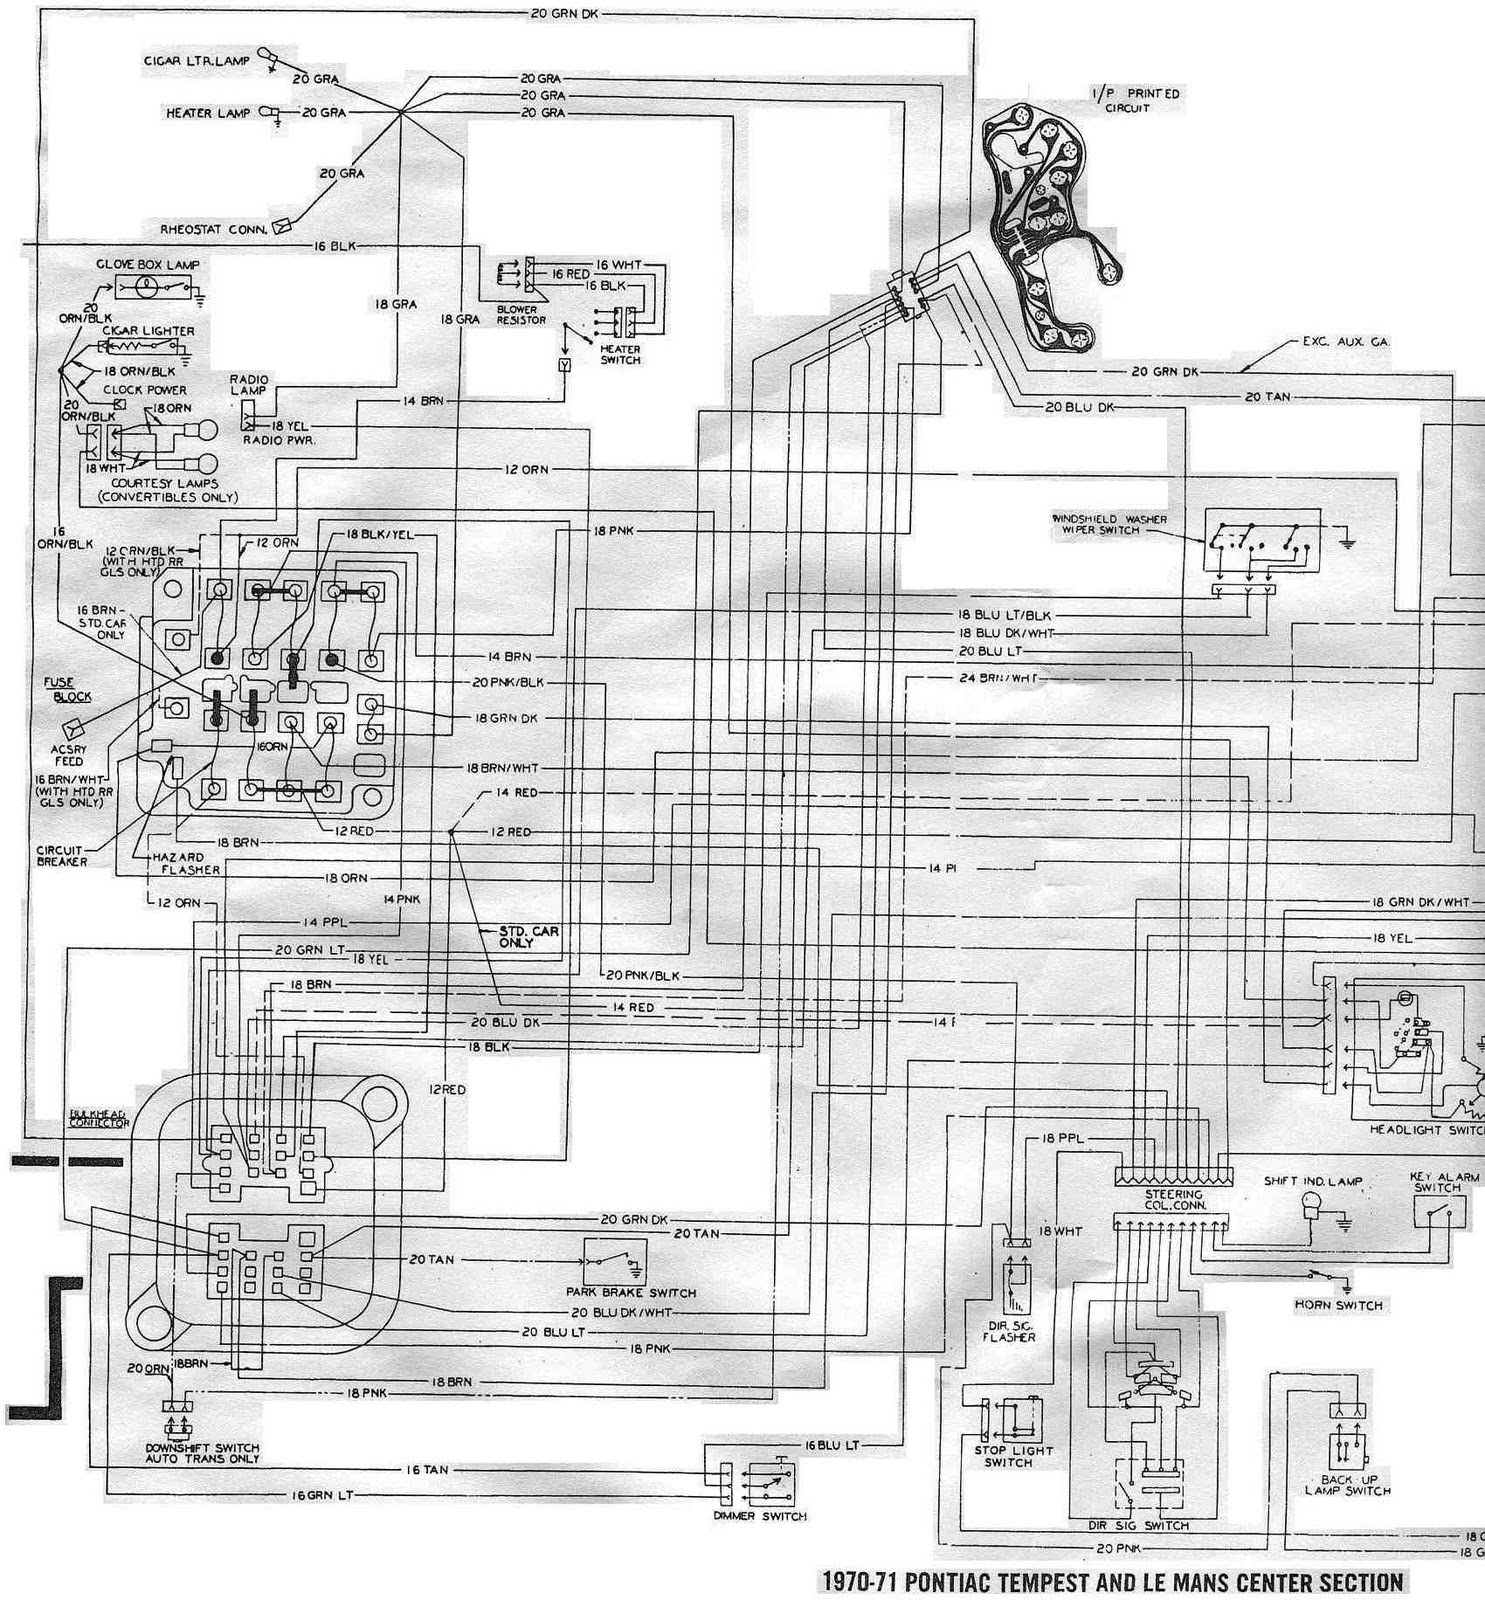 Pontiac+Tempest+and+LeMans+1970 1971+Center+Section+Schematic+Diagram 1967 gto wiring diagram 1967 gto tach wiring diagram \u2022 wiring free pontiac wiring diagrams at honlapkeszites.co